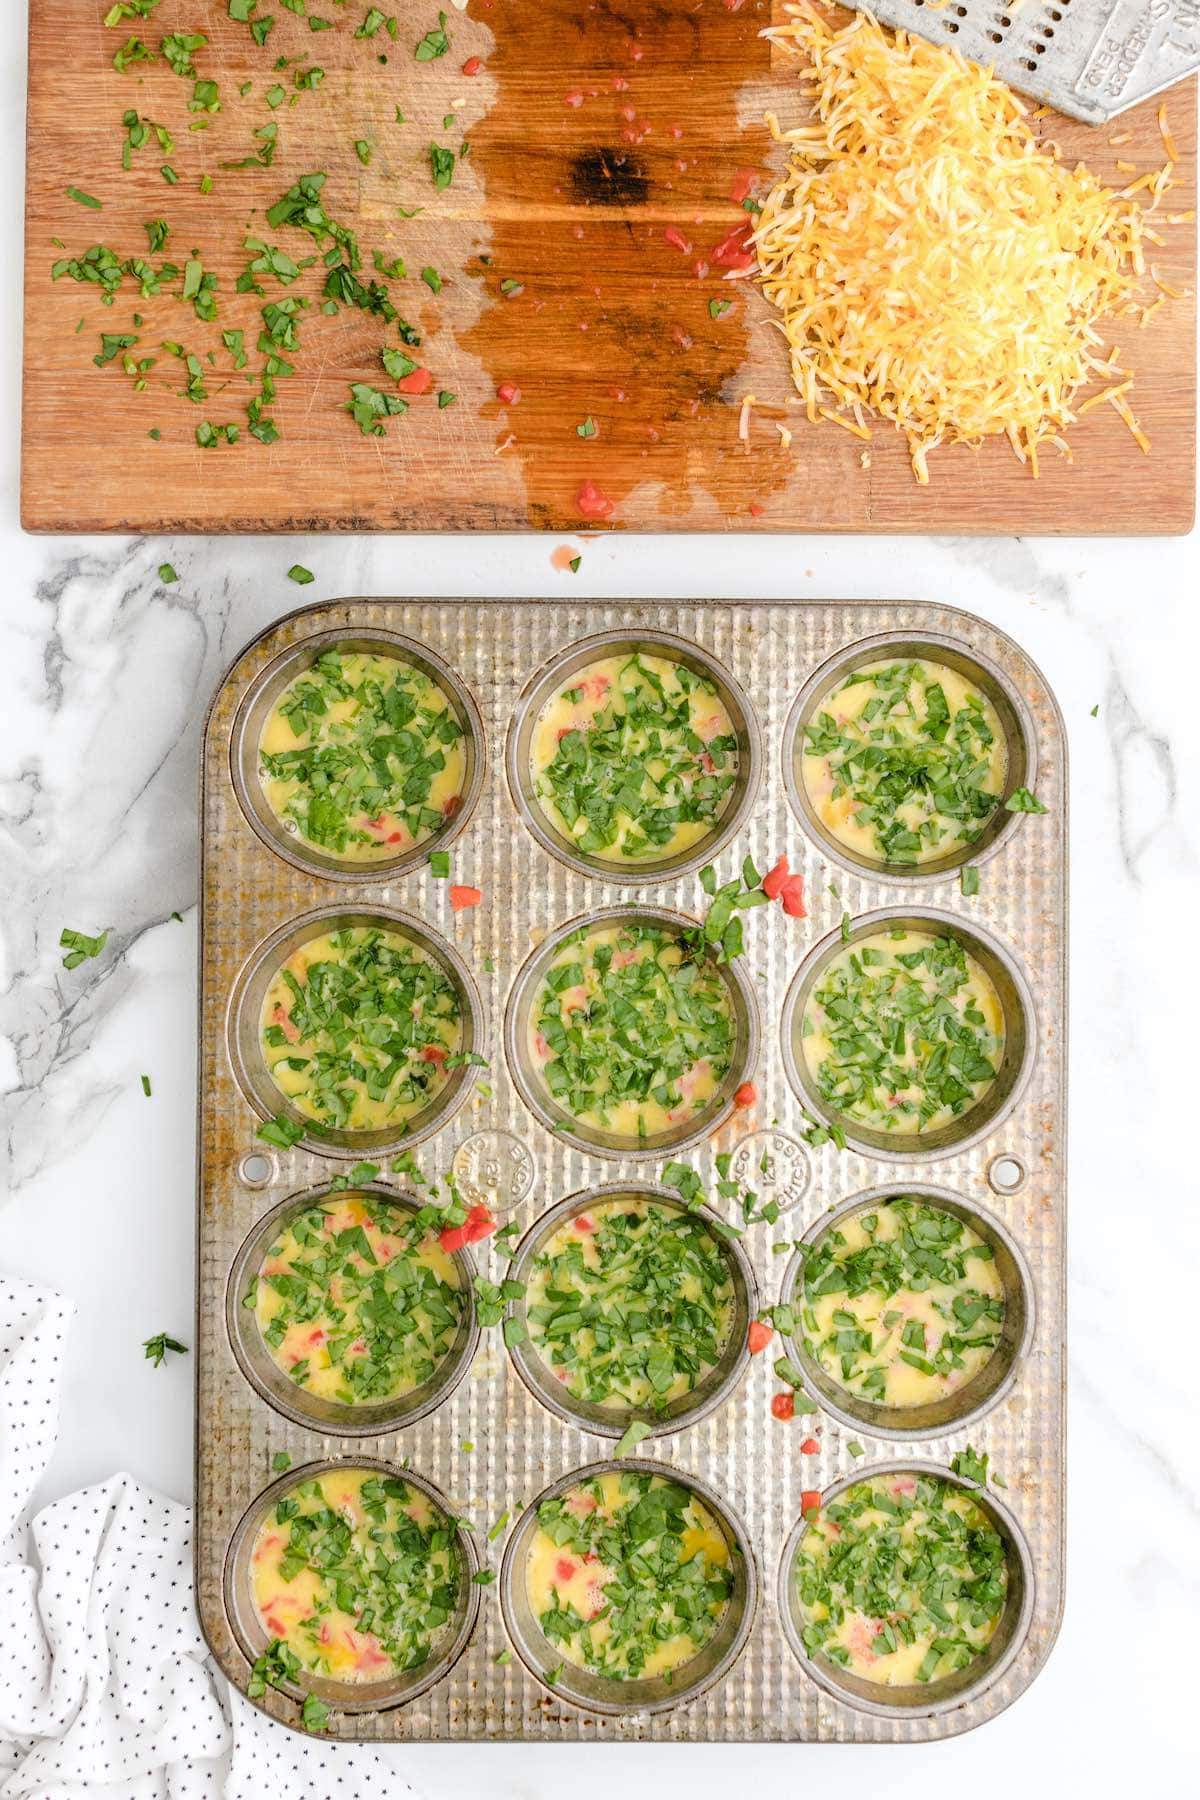 add spinach to each muffin spots